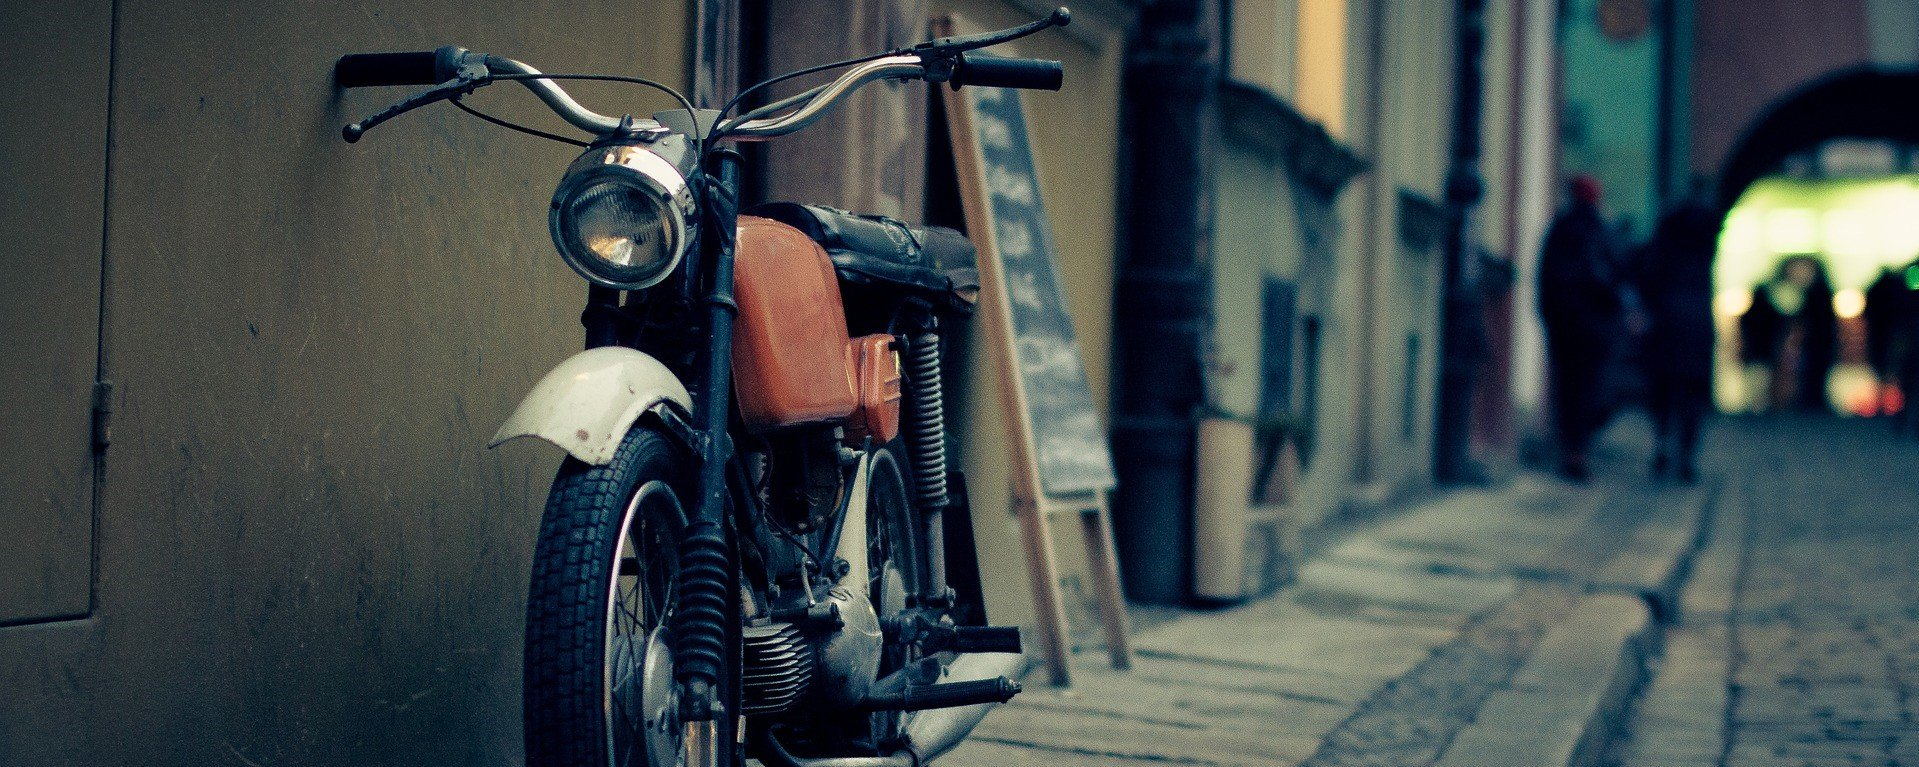 Motorcycle on the Street | Veteran Car Donations